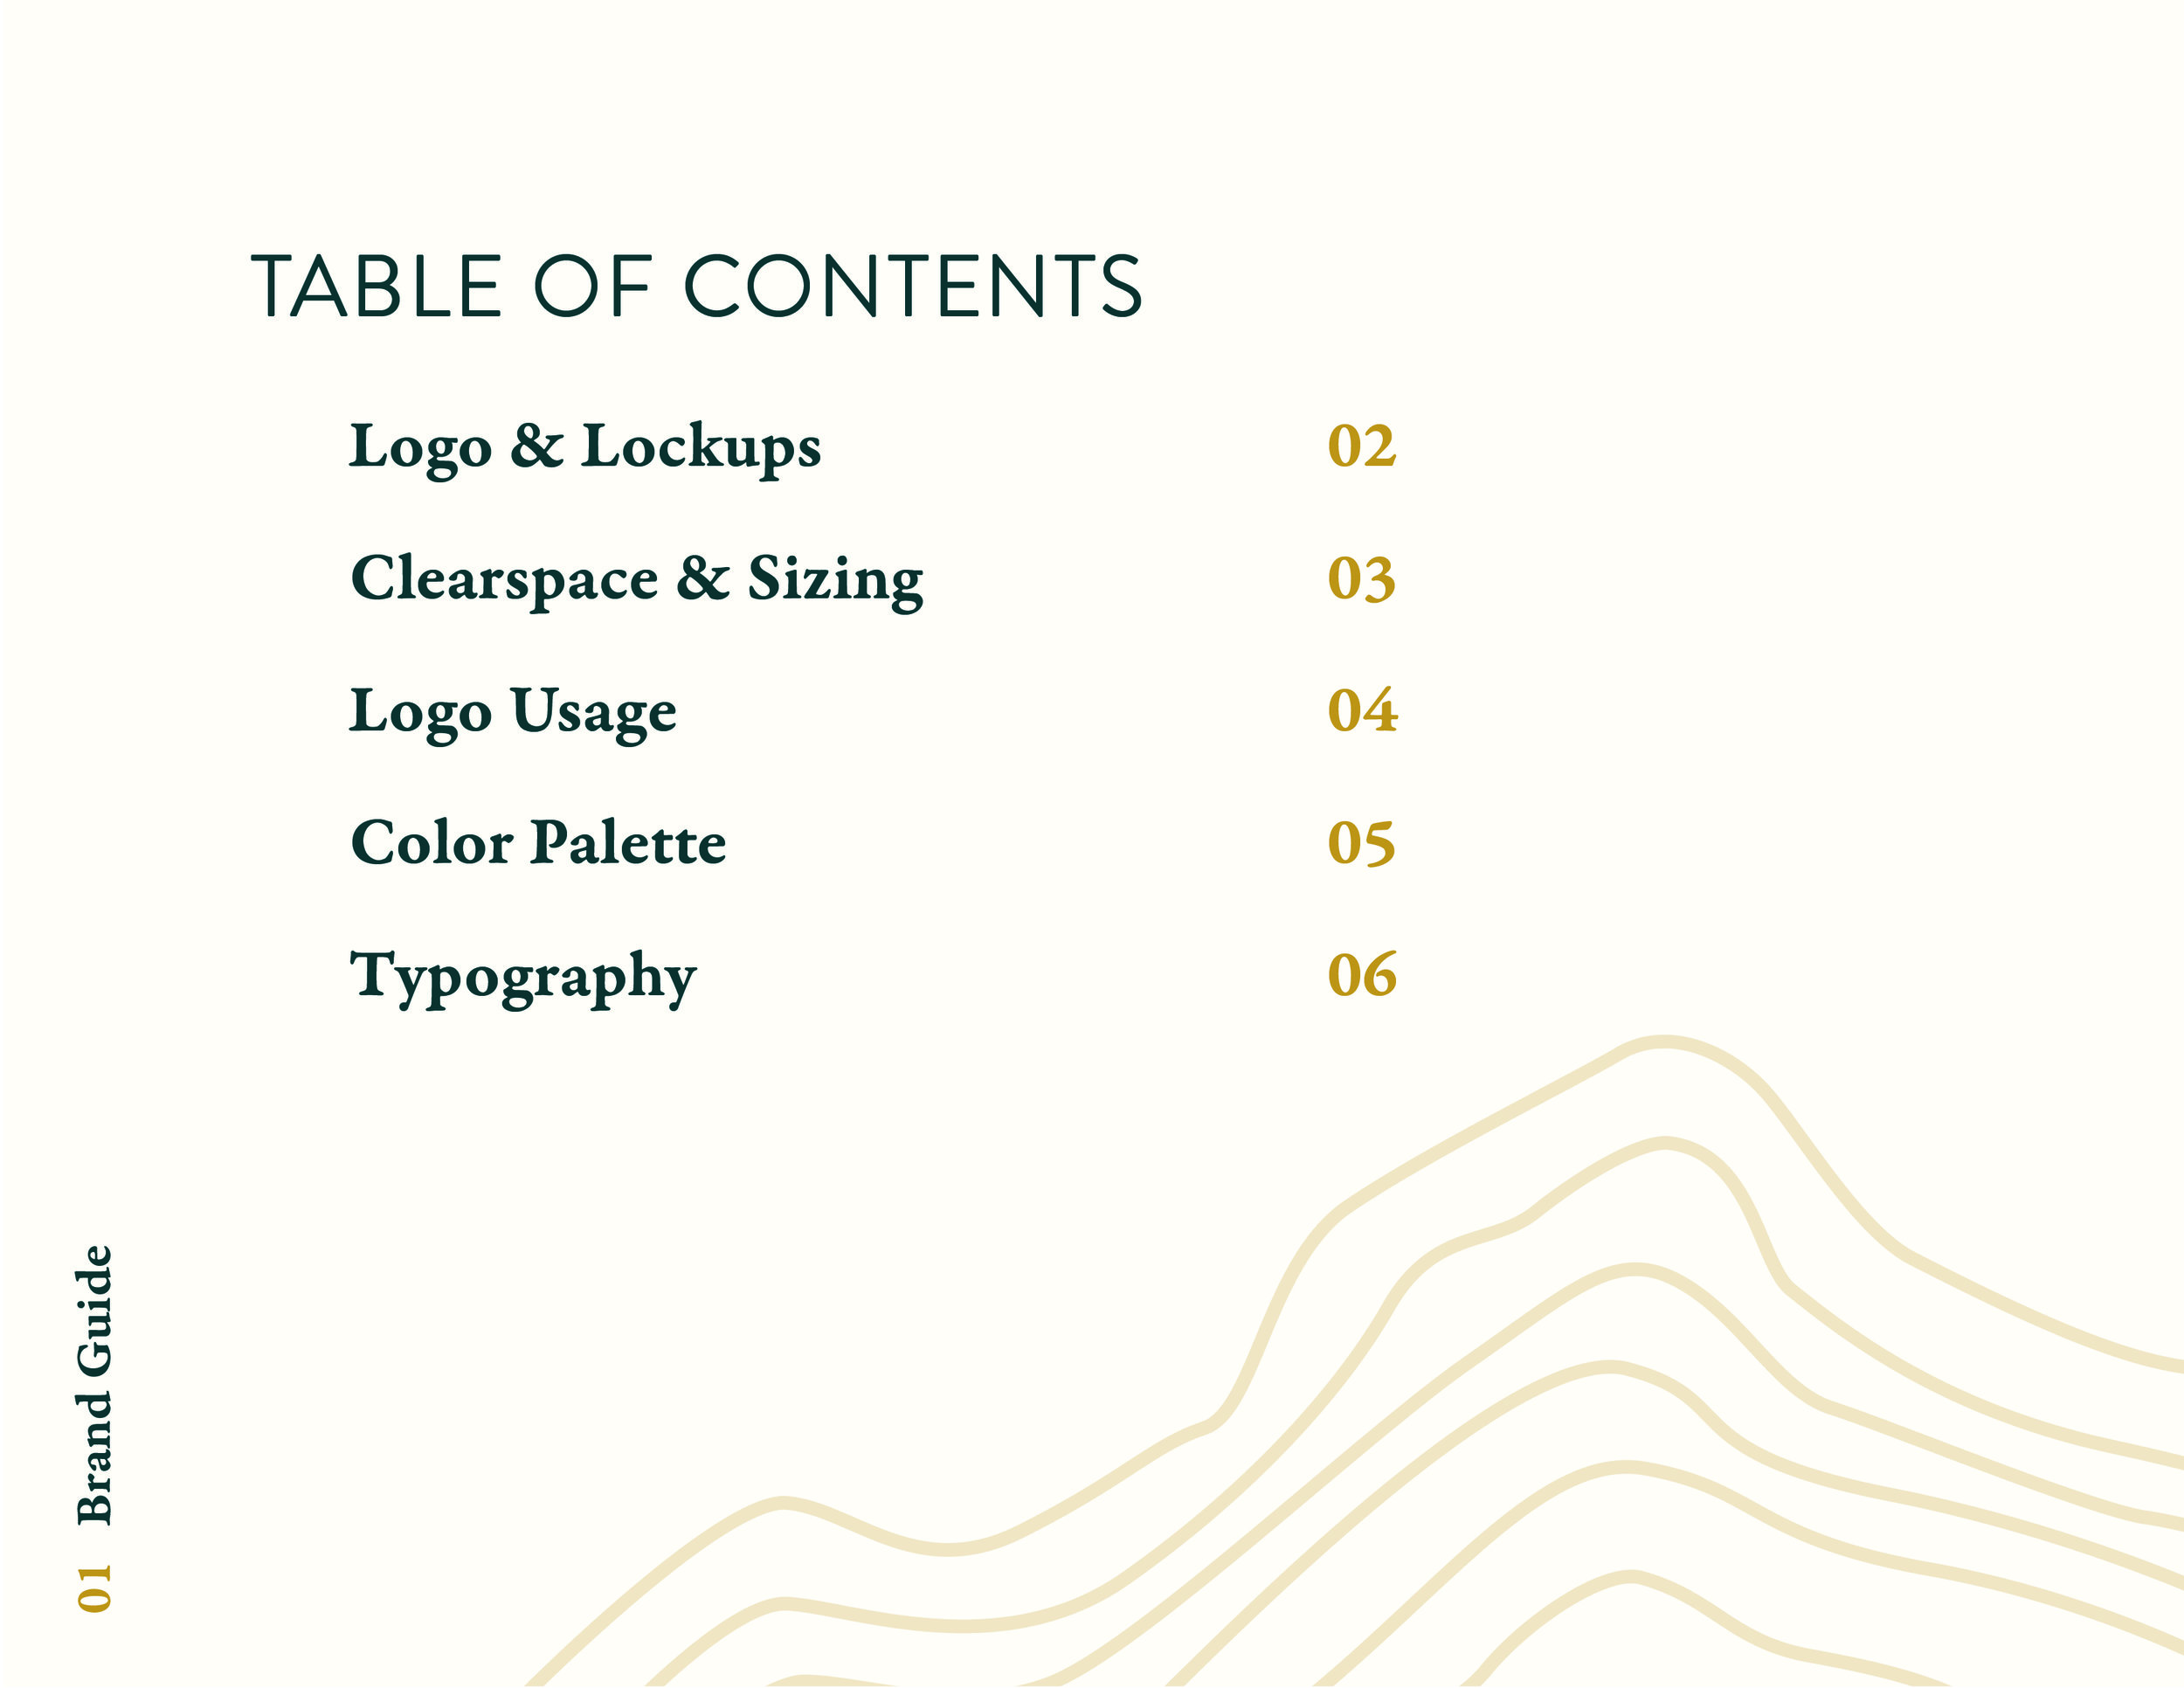 Wyoming Physician Services Brand Guide_222019_Table of Contents.jpg